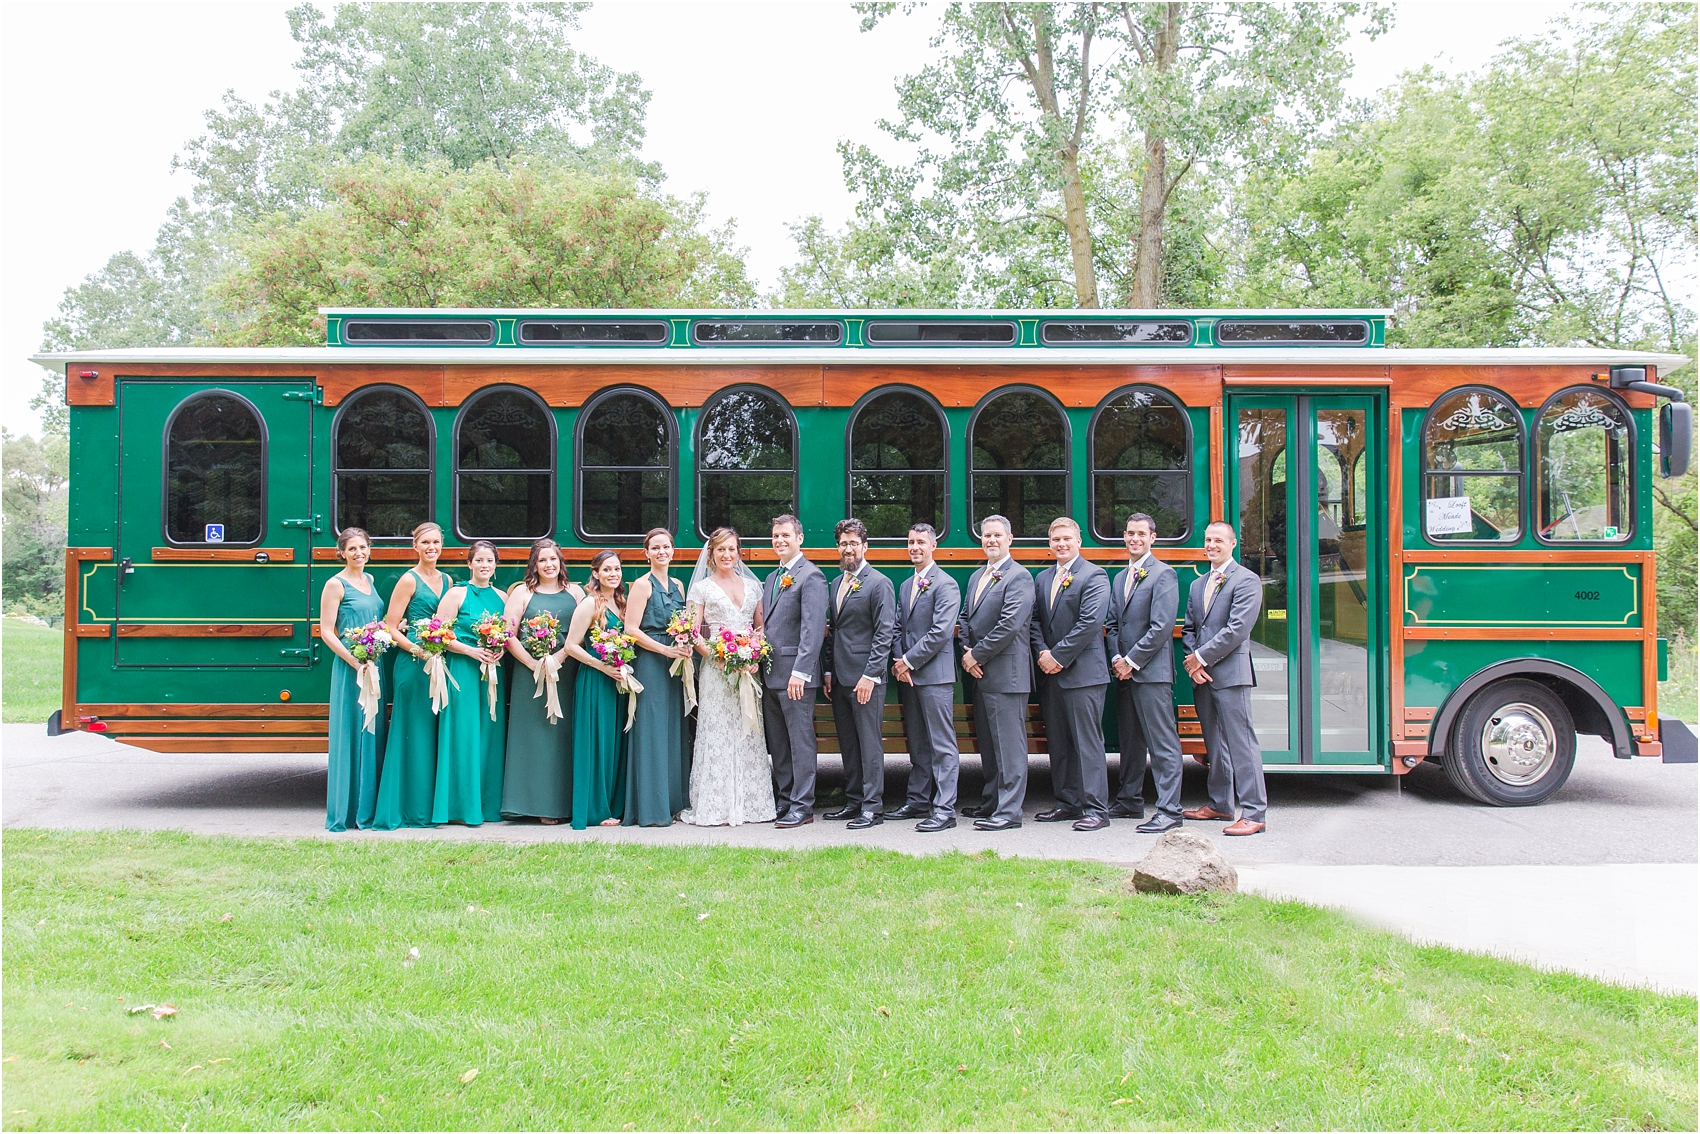 romantic-intimate-backyard-wedding-photos-at-private-estate-in-ann-arbor-mi-by-courtney-carolyn-photography_0124.jpg